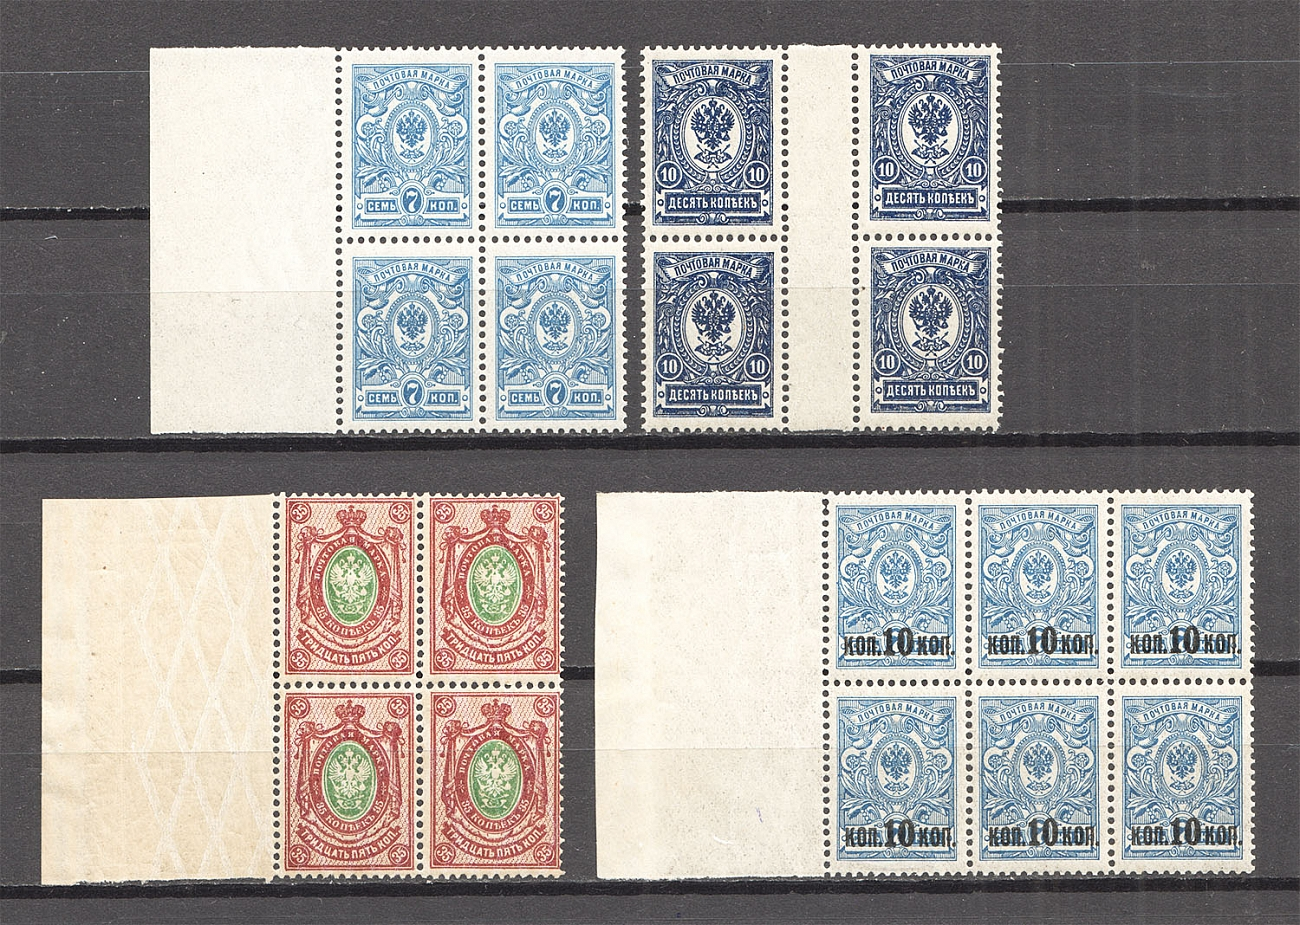 Lot 3 - Russia: Empire & Offices Abroad Russian Empire Issues -  OldLouis Auctions Russia: Empire & Offices Abroad - Rare Stamps Auction №8